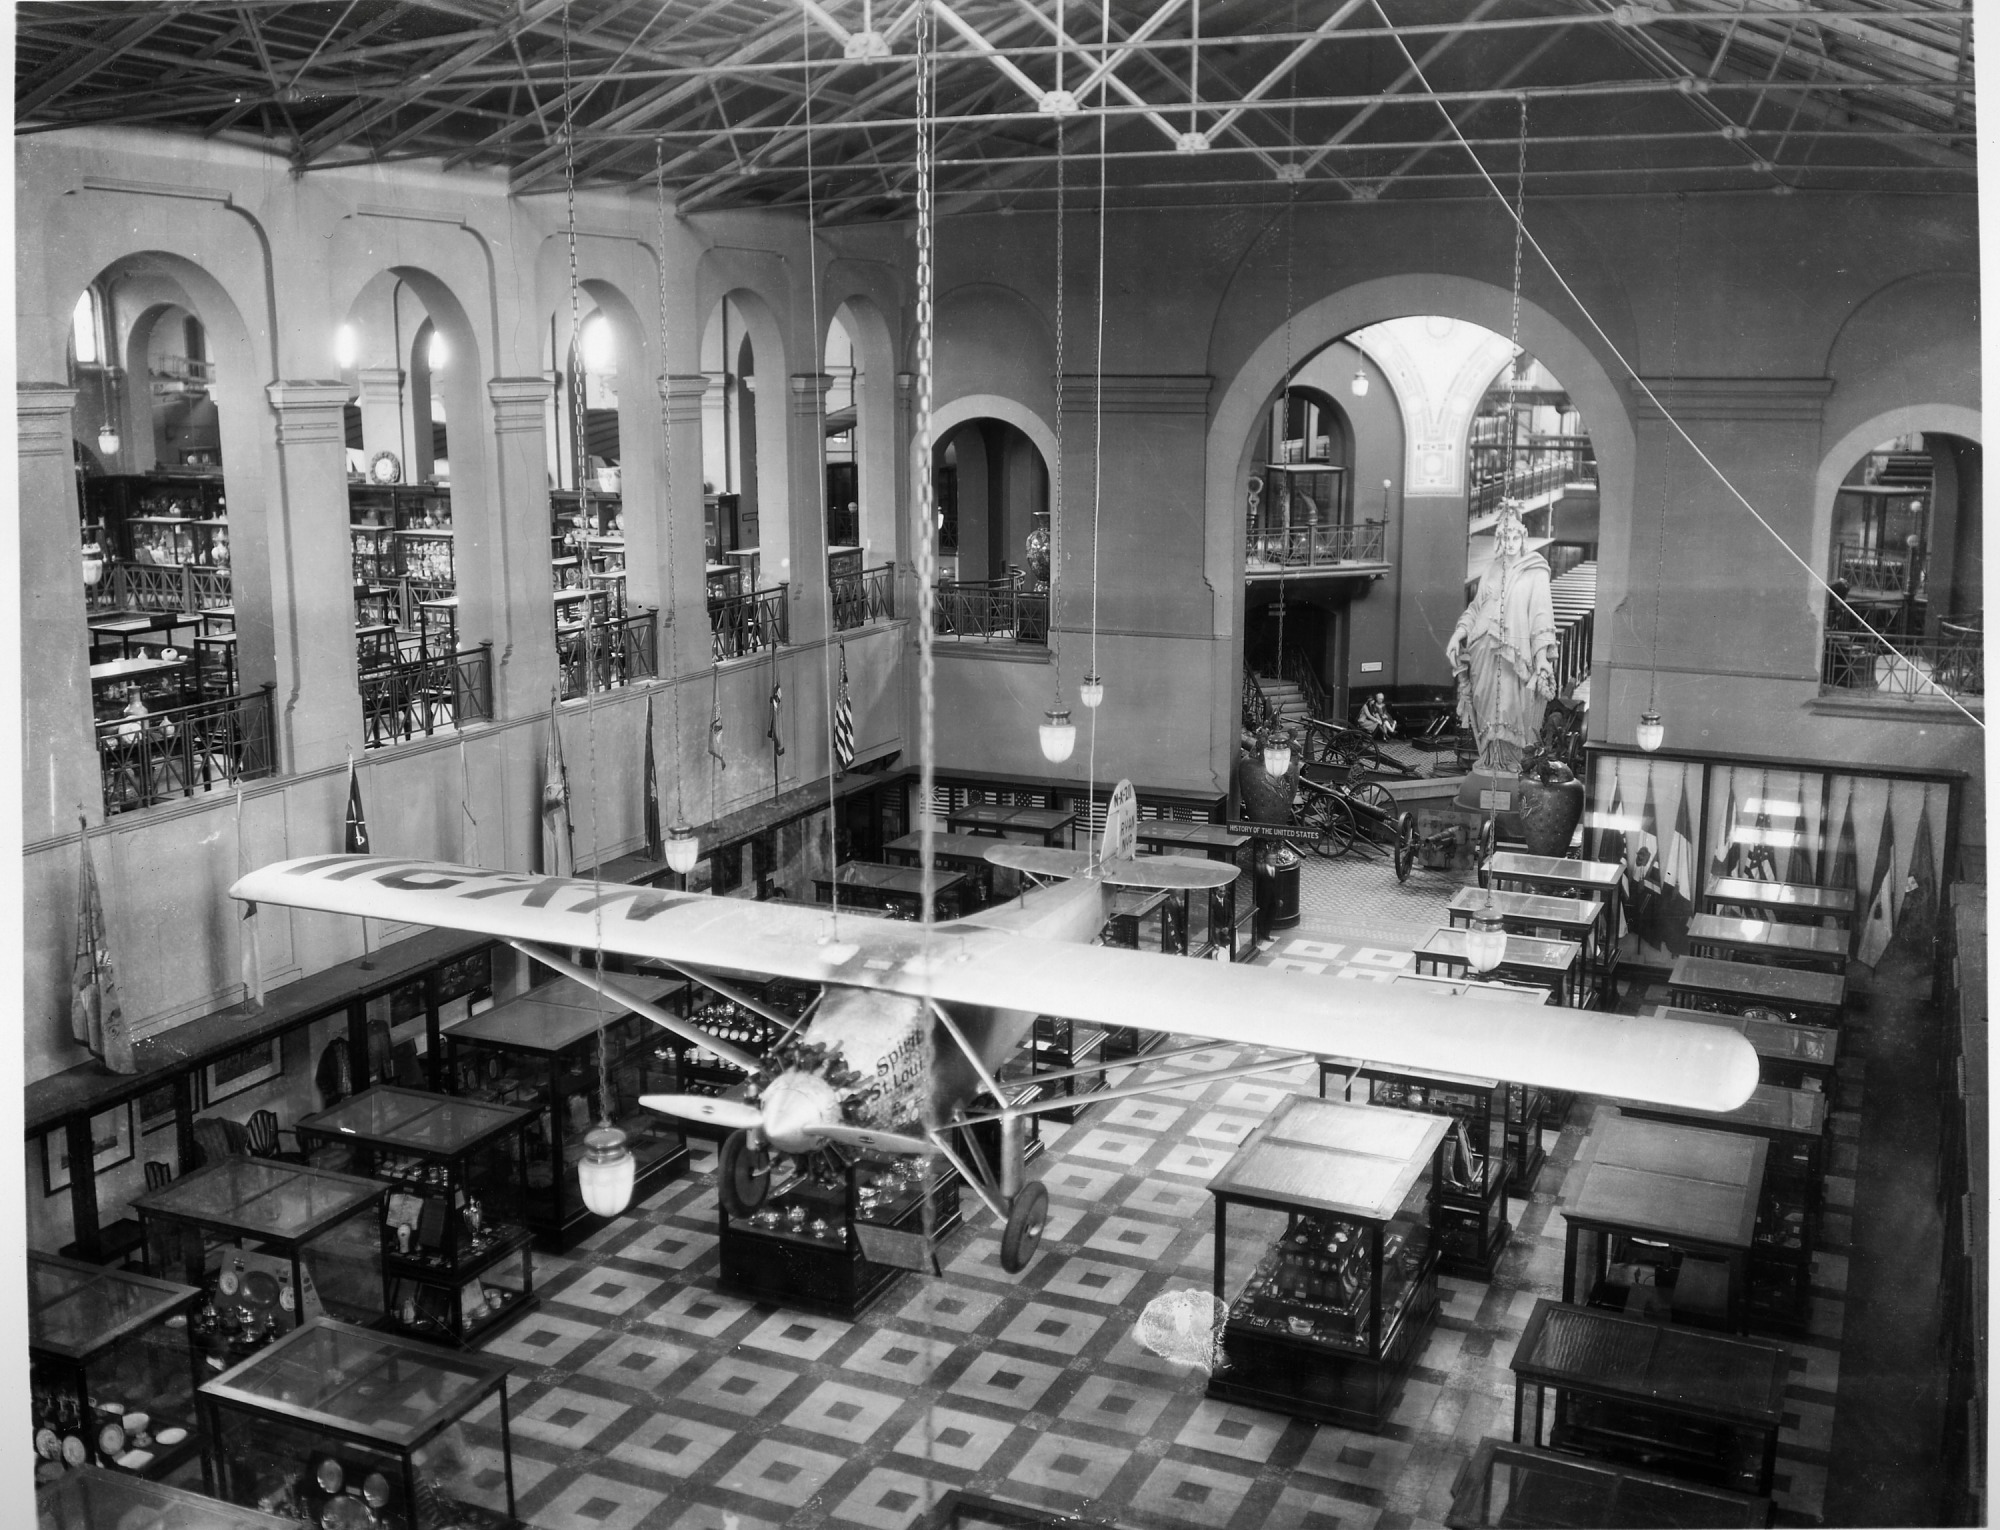 Spirit of St. Louis in the United States National Museum, by Unknown, 1930s, Smithsonian Archives - History Div, 2002-12192.